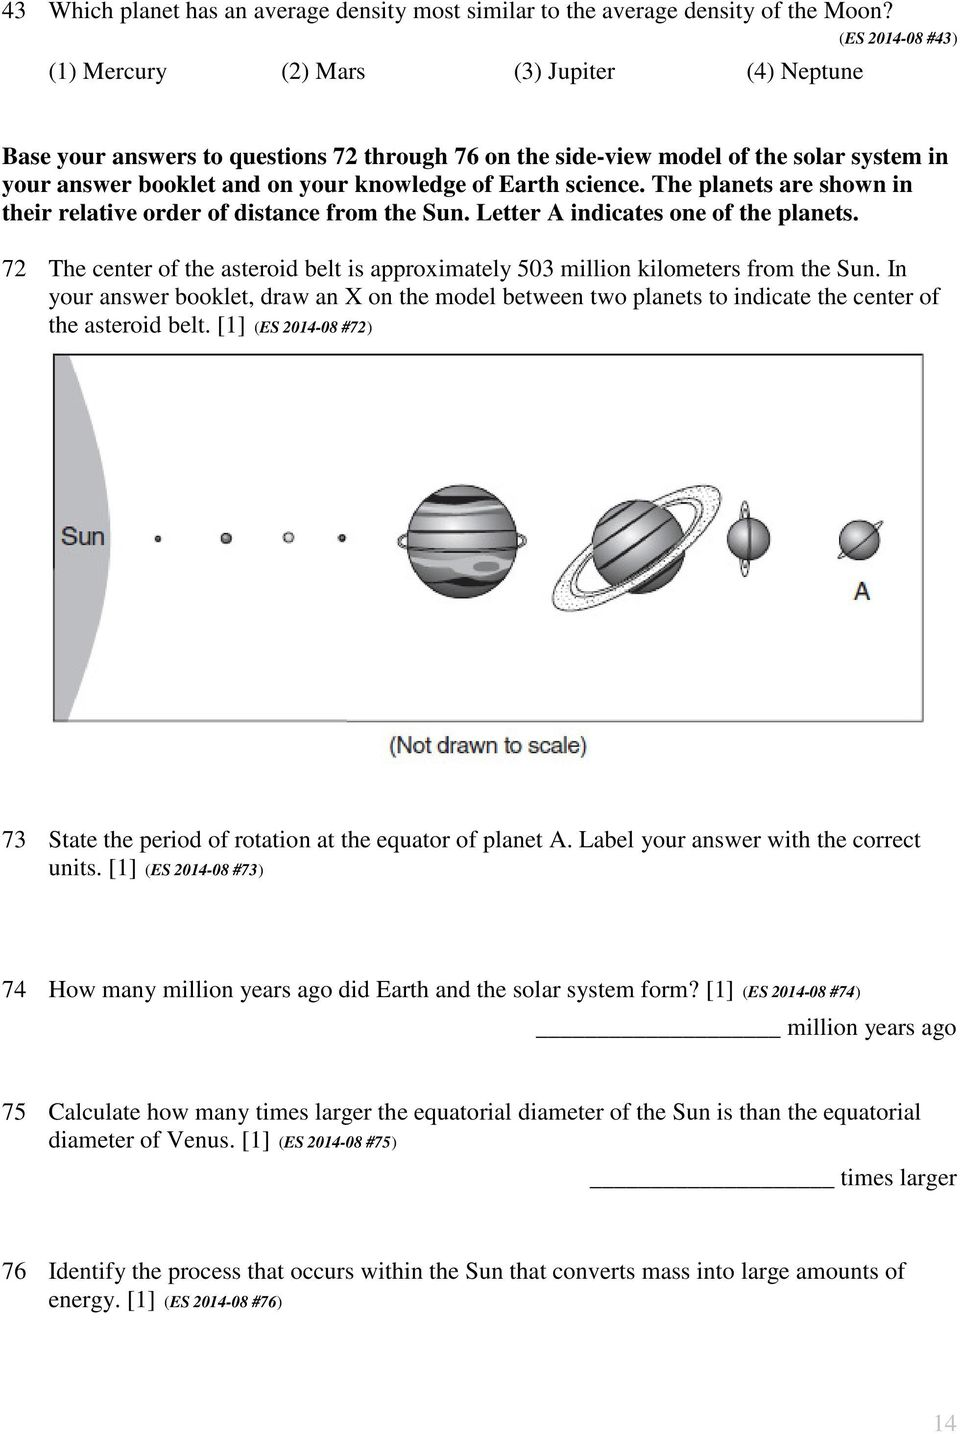 Earth science. The planets are shown in their relative order of distance from the Sun. Letter A indicates one of the planets.